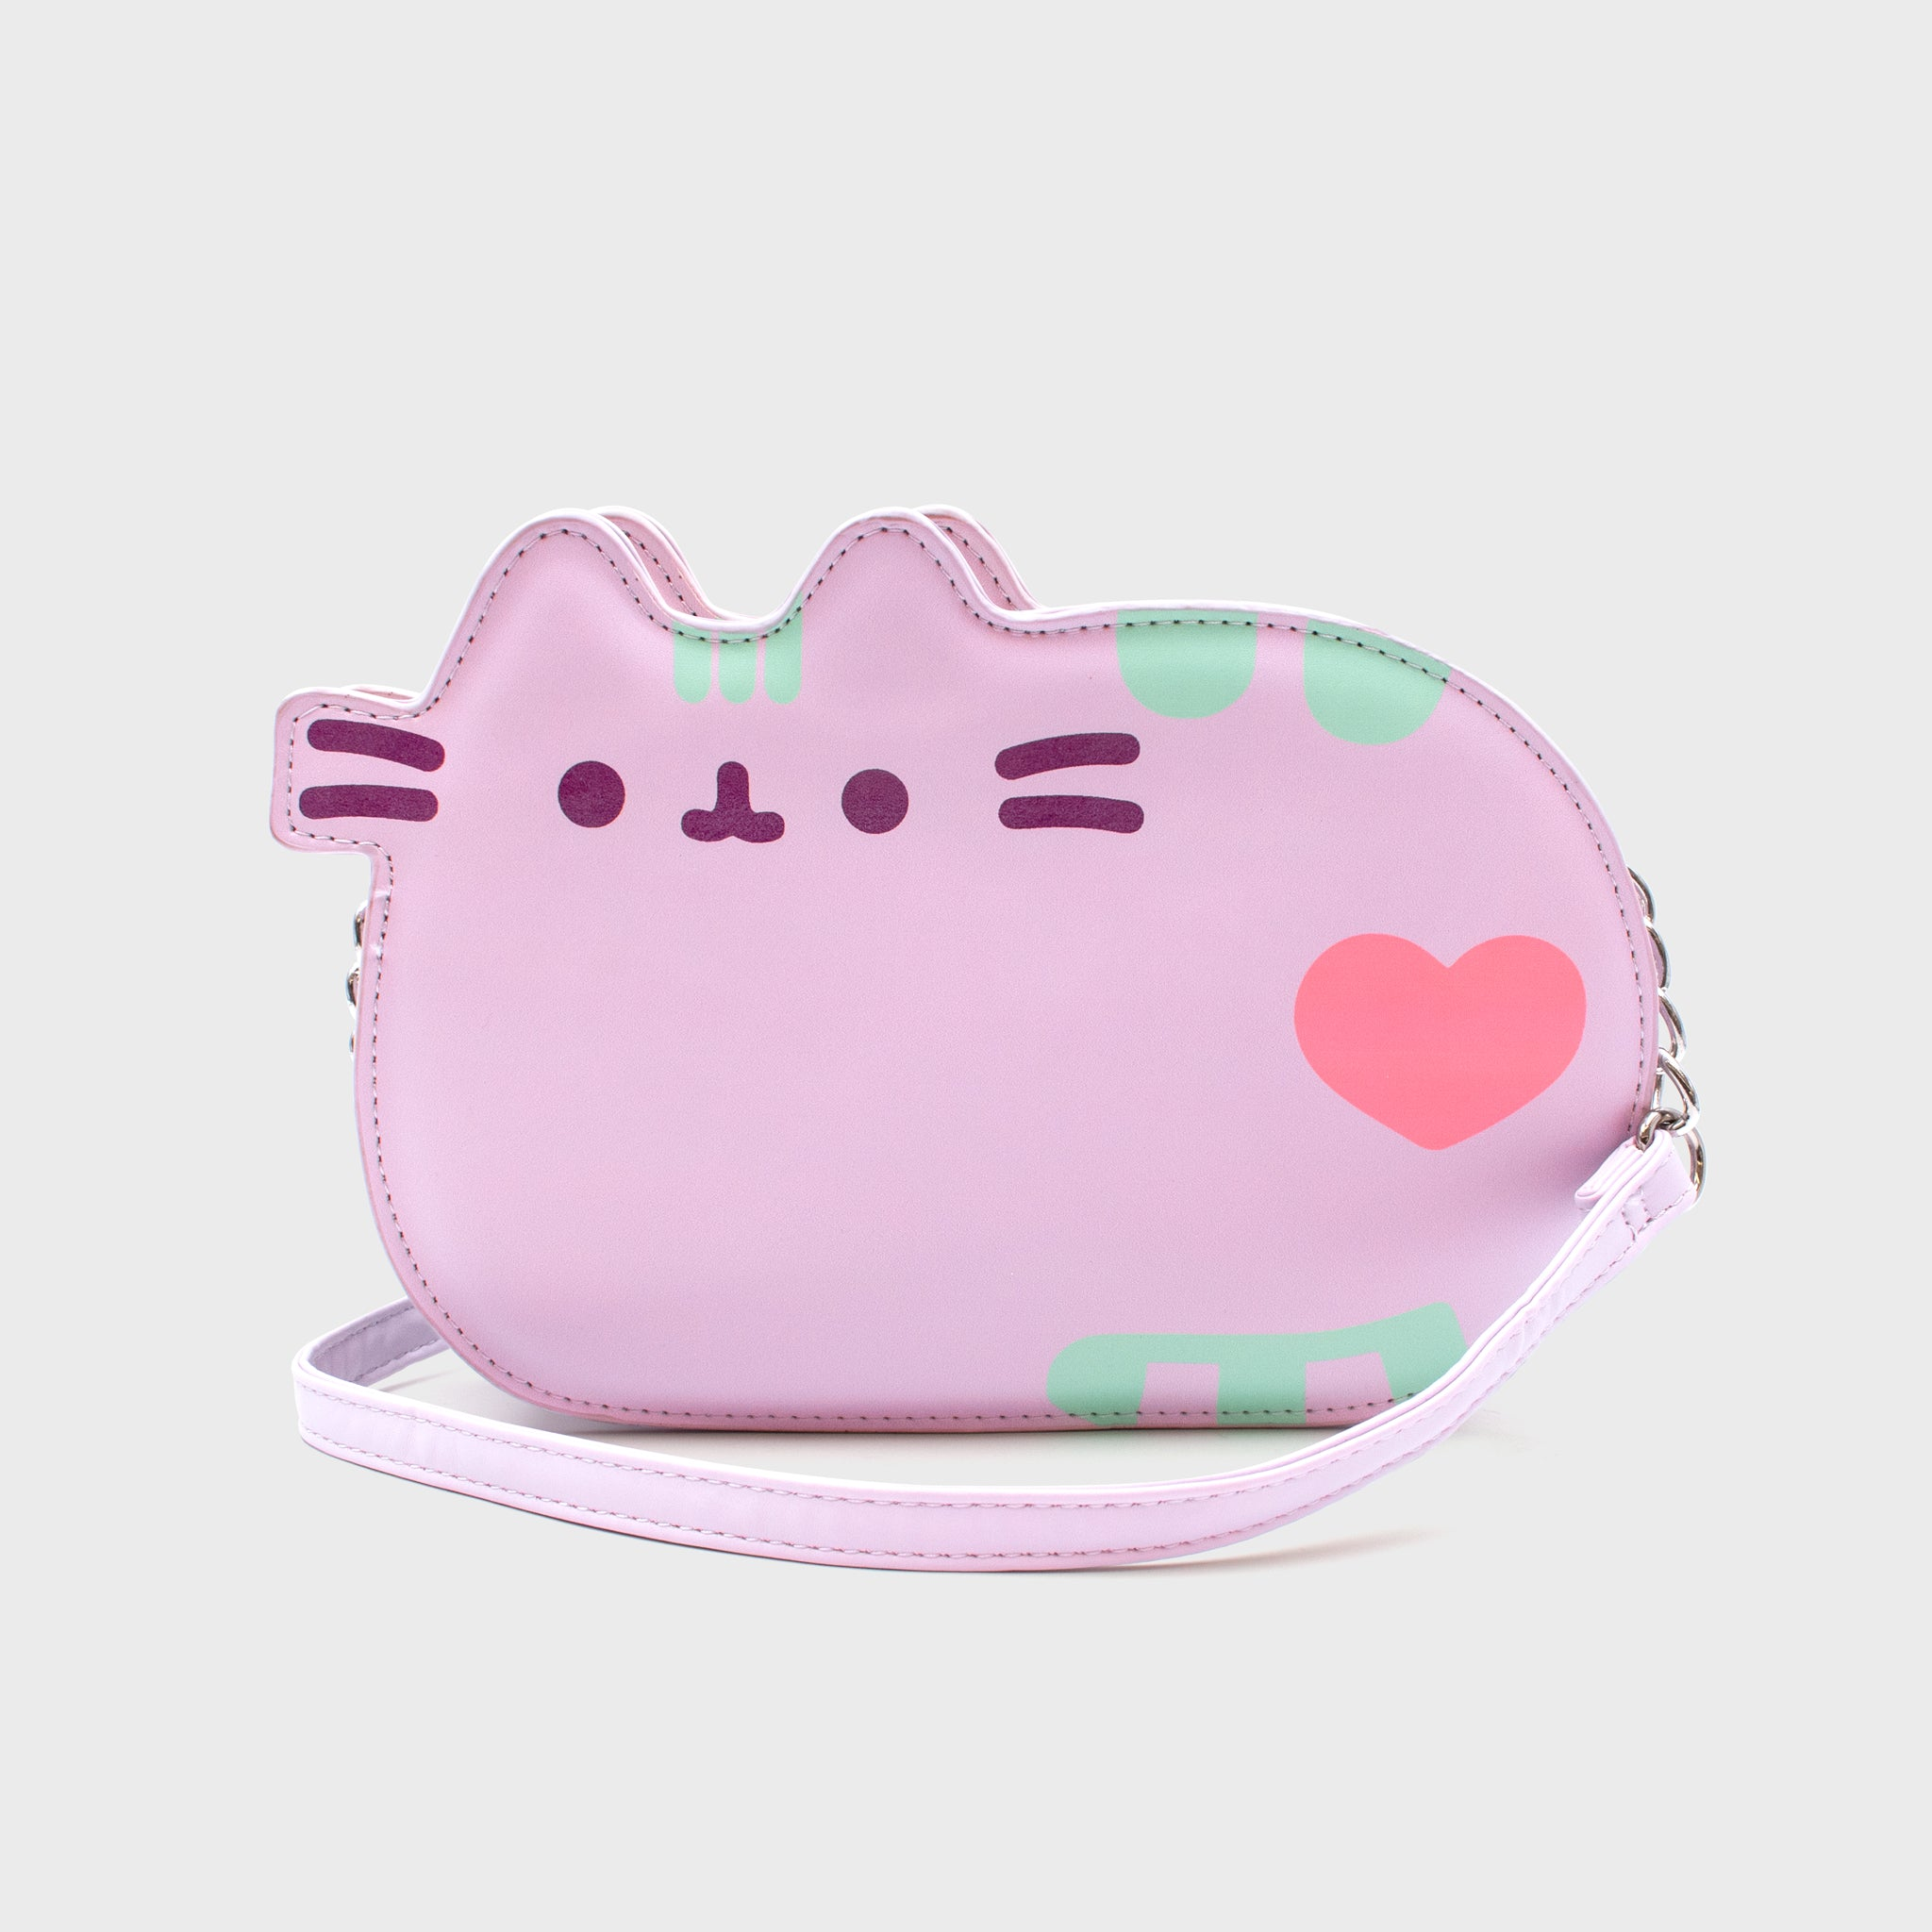 pusheen accessory crossbody bag purse purple cute adorable cat culturefly